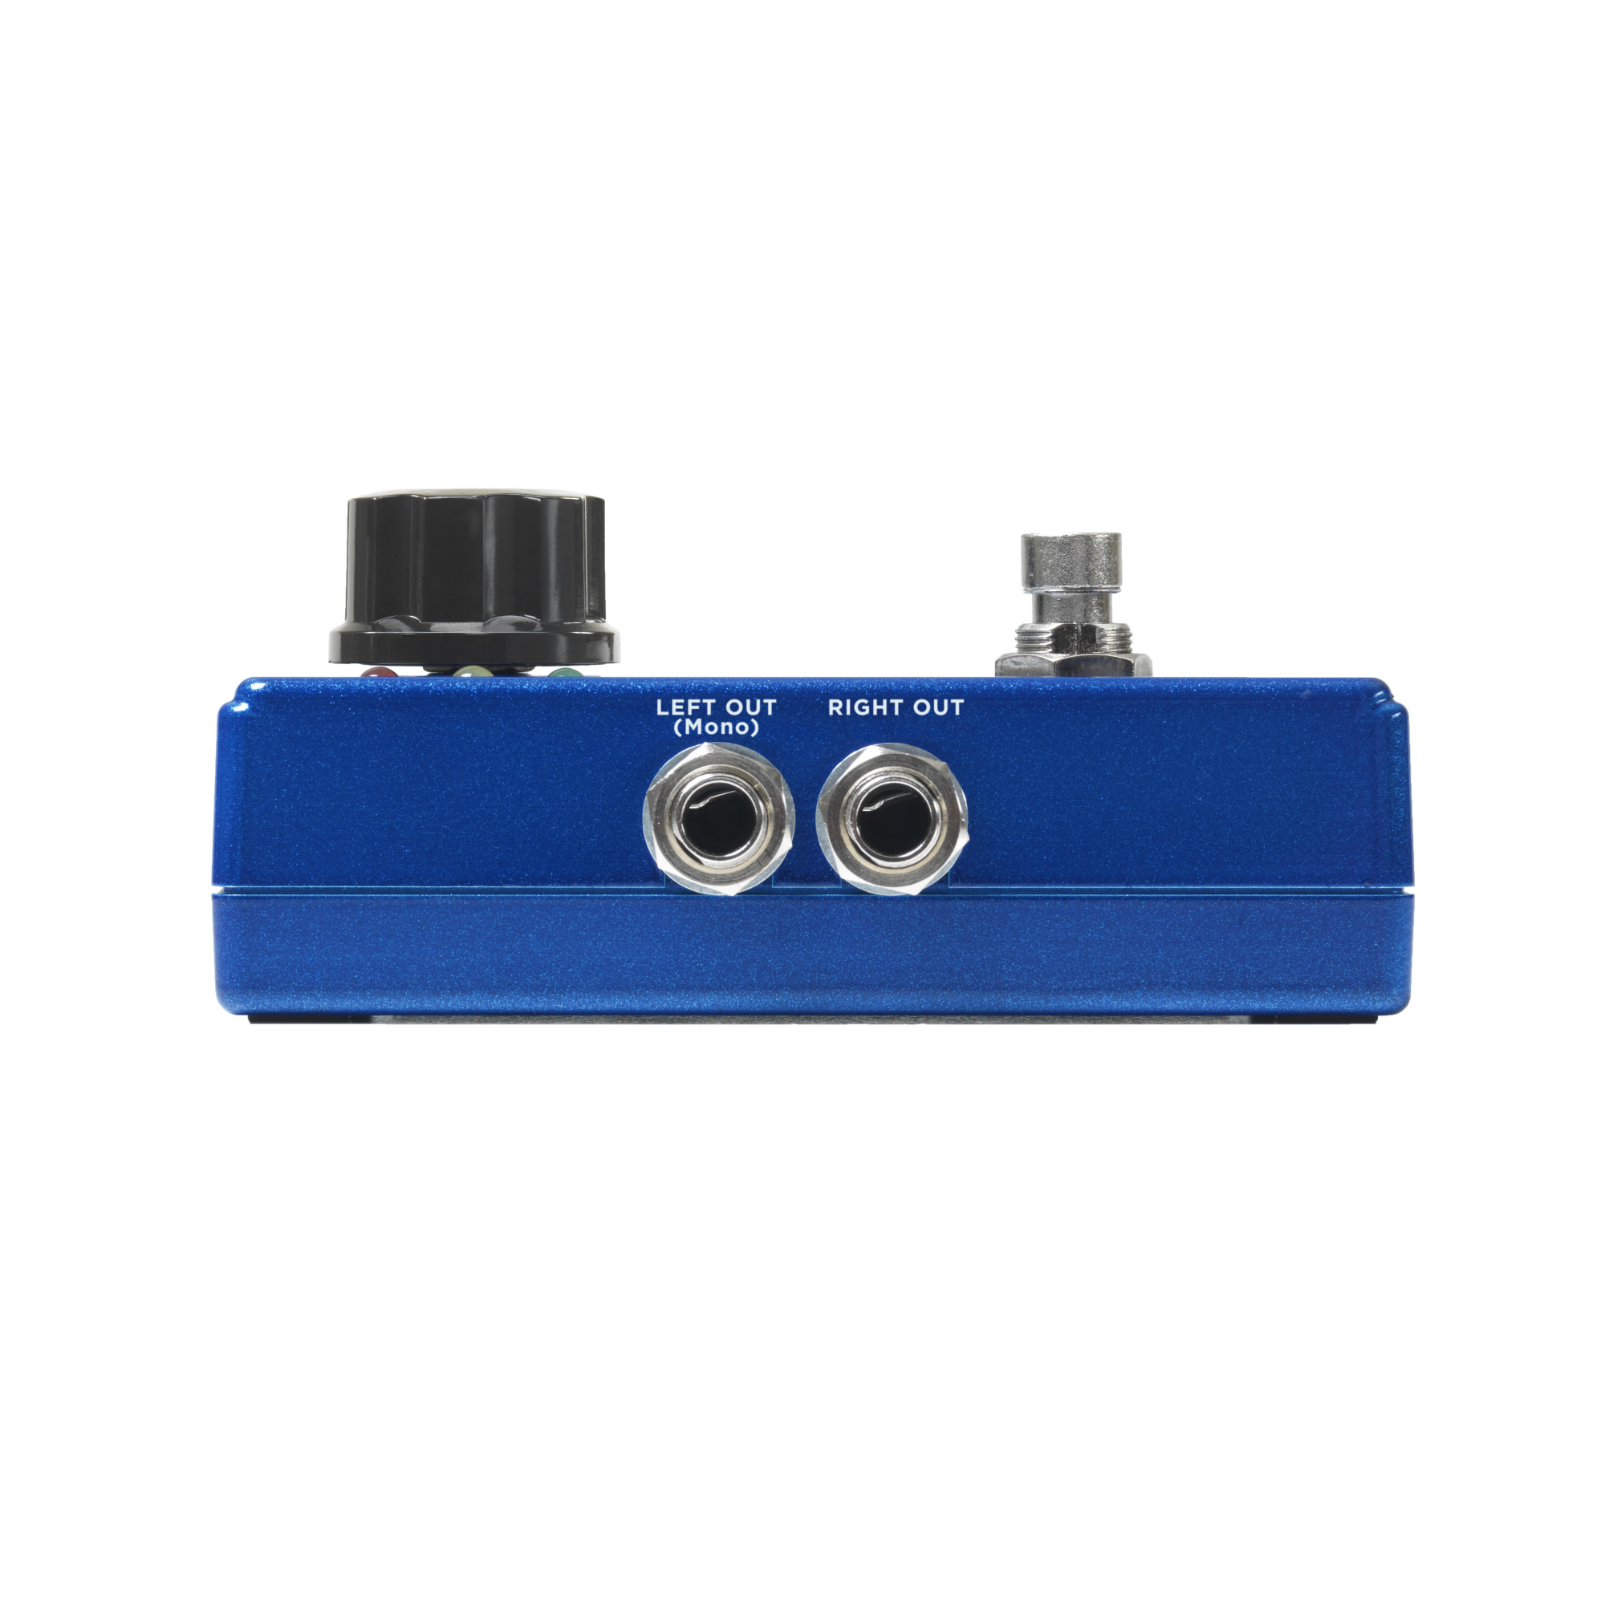 JamMan Express XT (discontinued) - Blue - Compact Stereo Looper with JamSync - Detailshot 2